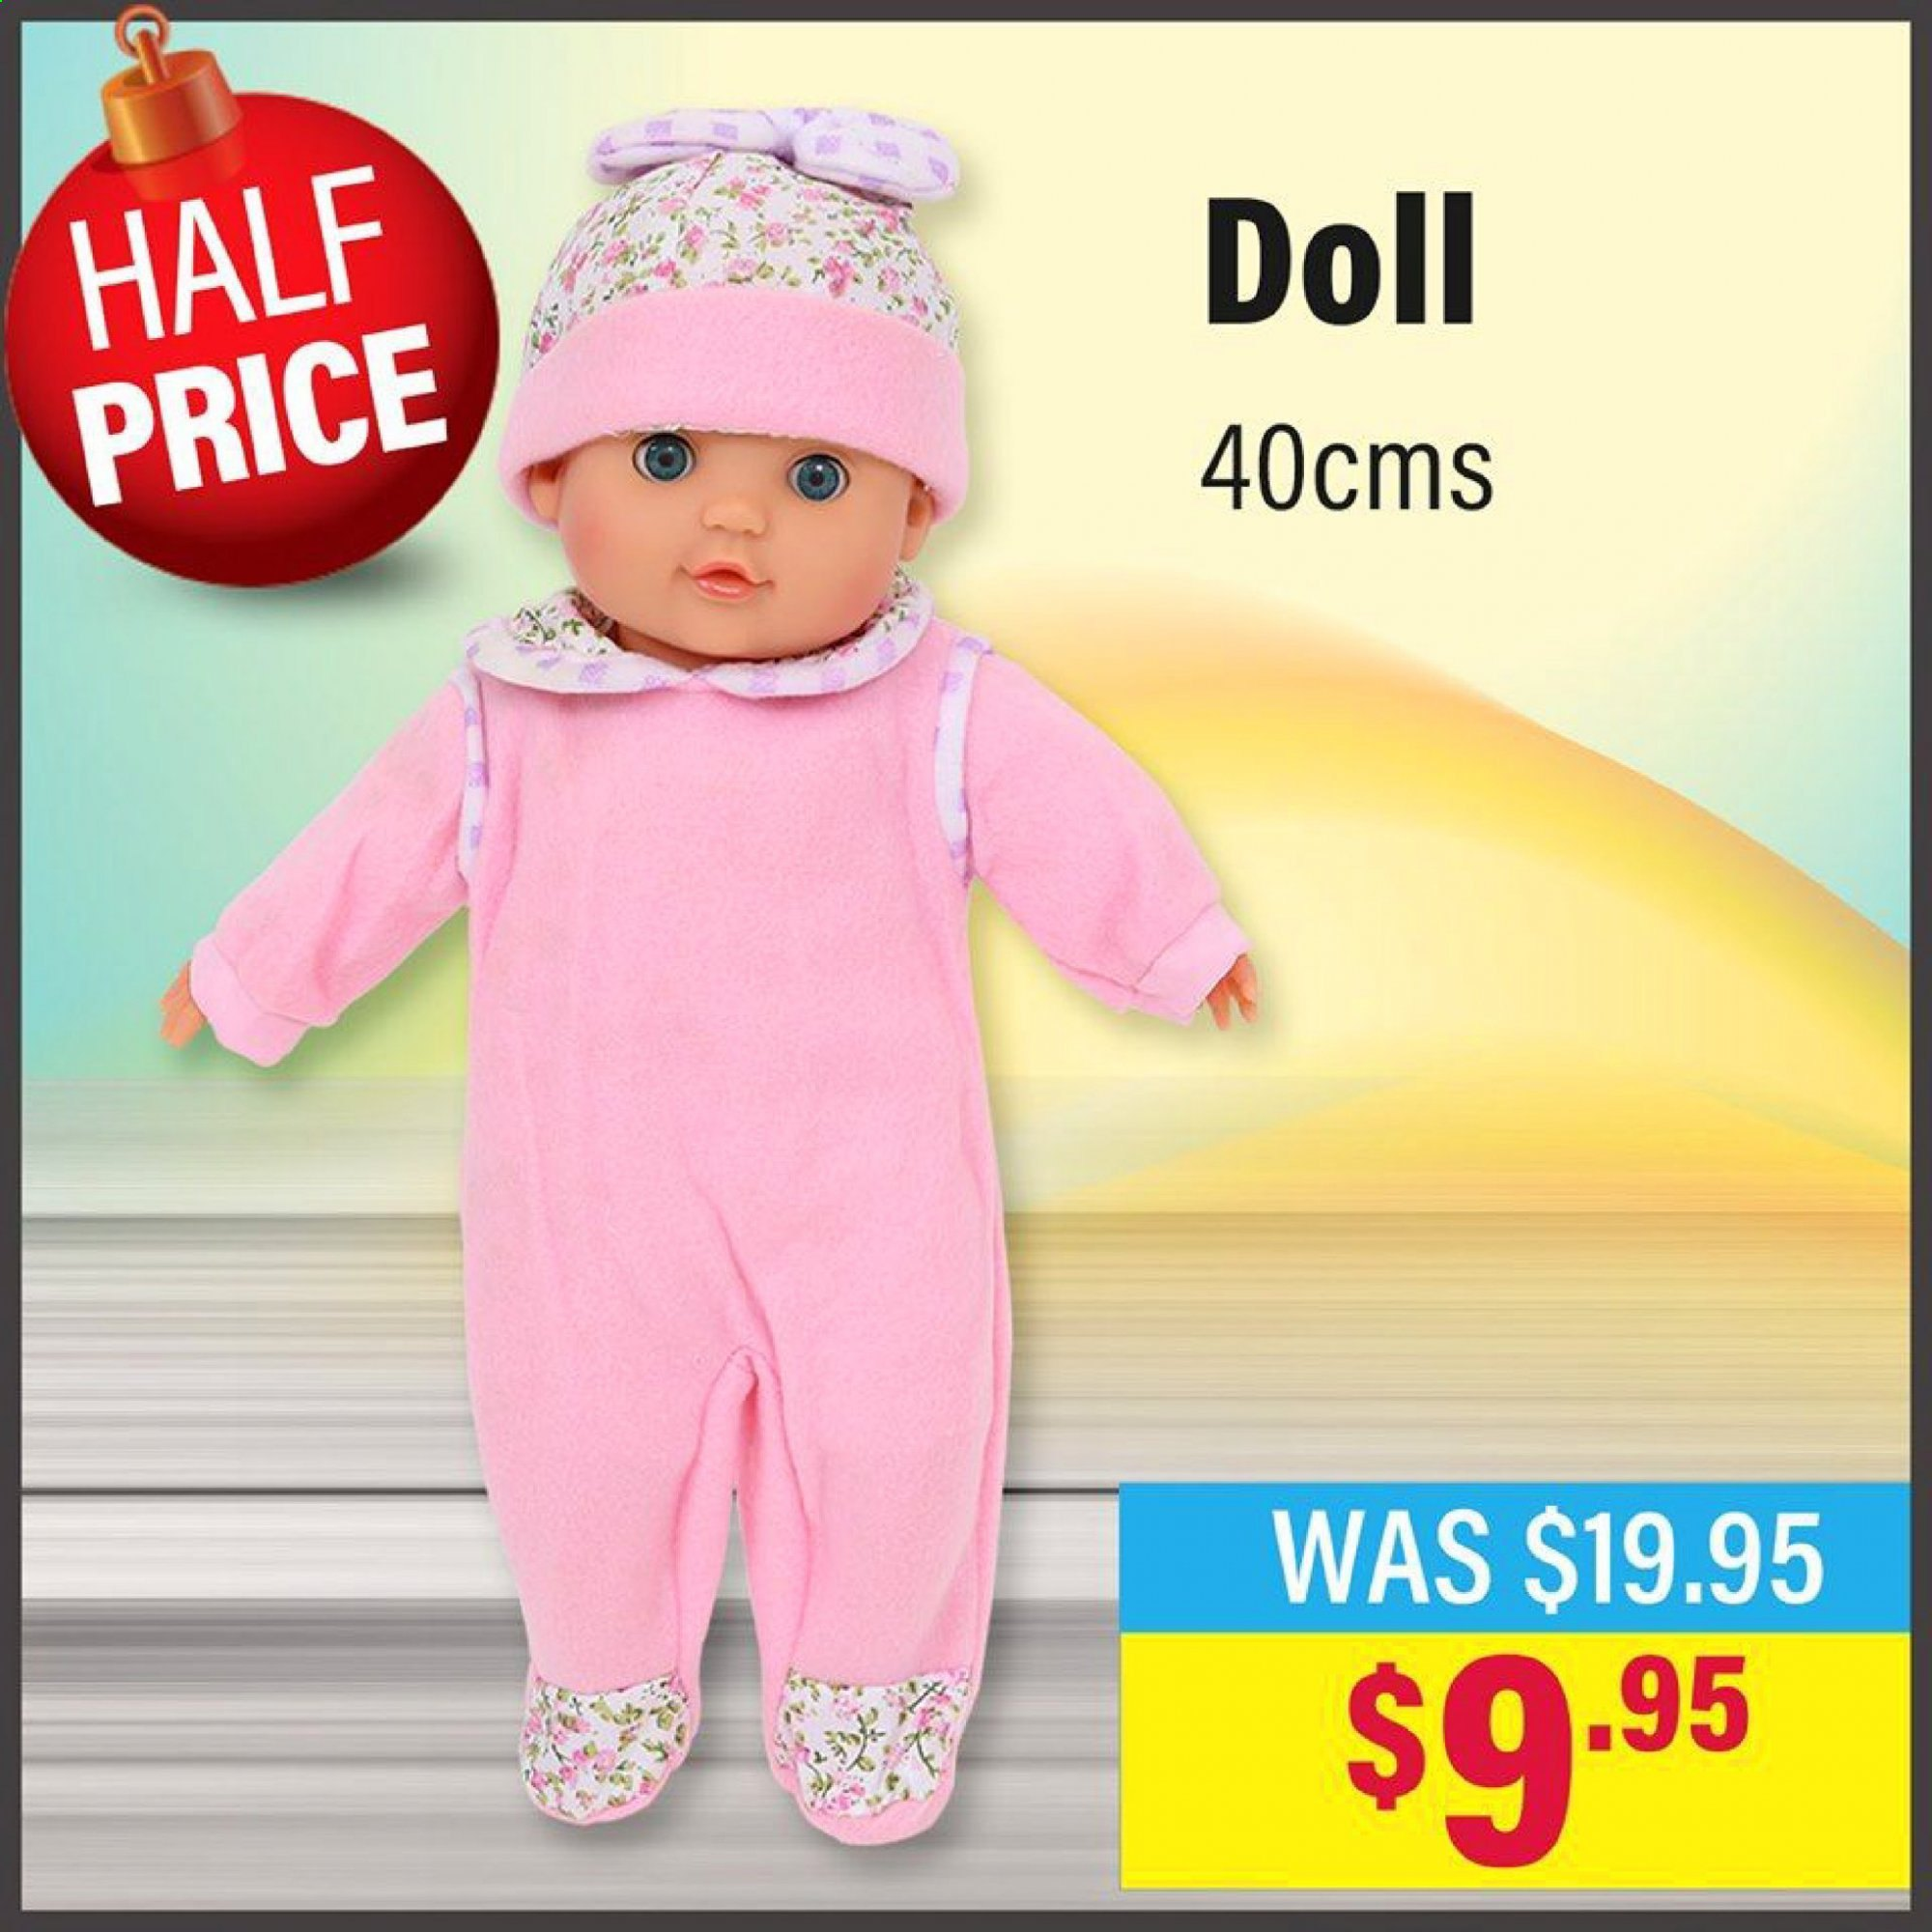 The Baby Factory mailer - 02.12.2019 - 24.12.2019 - Sales products - doll. Page 23.